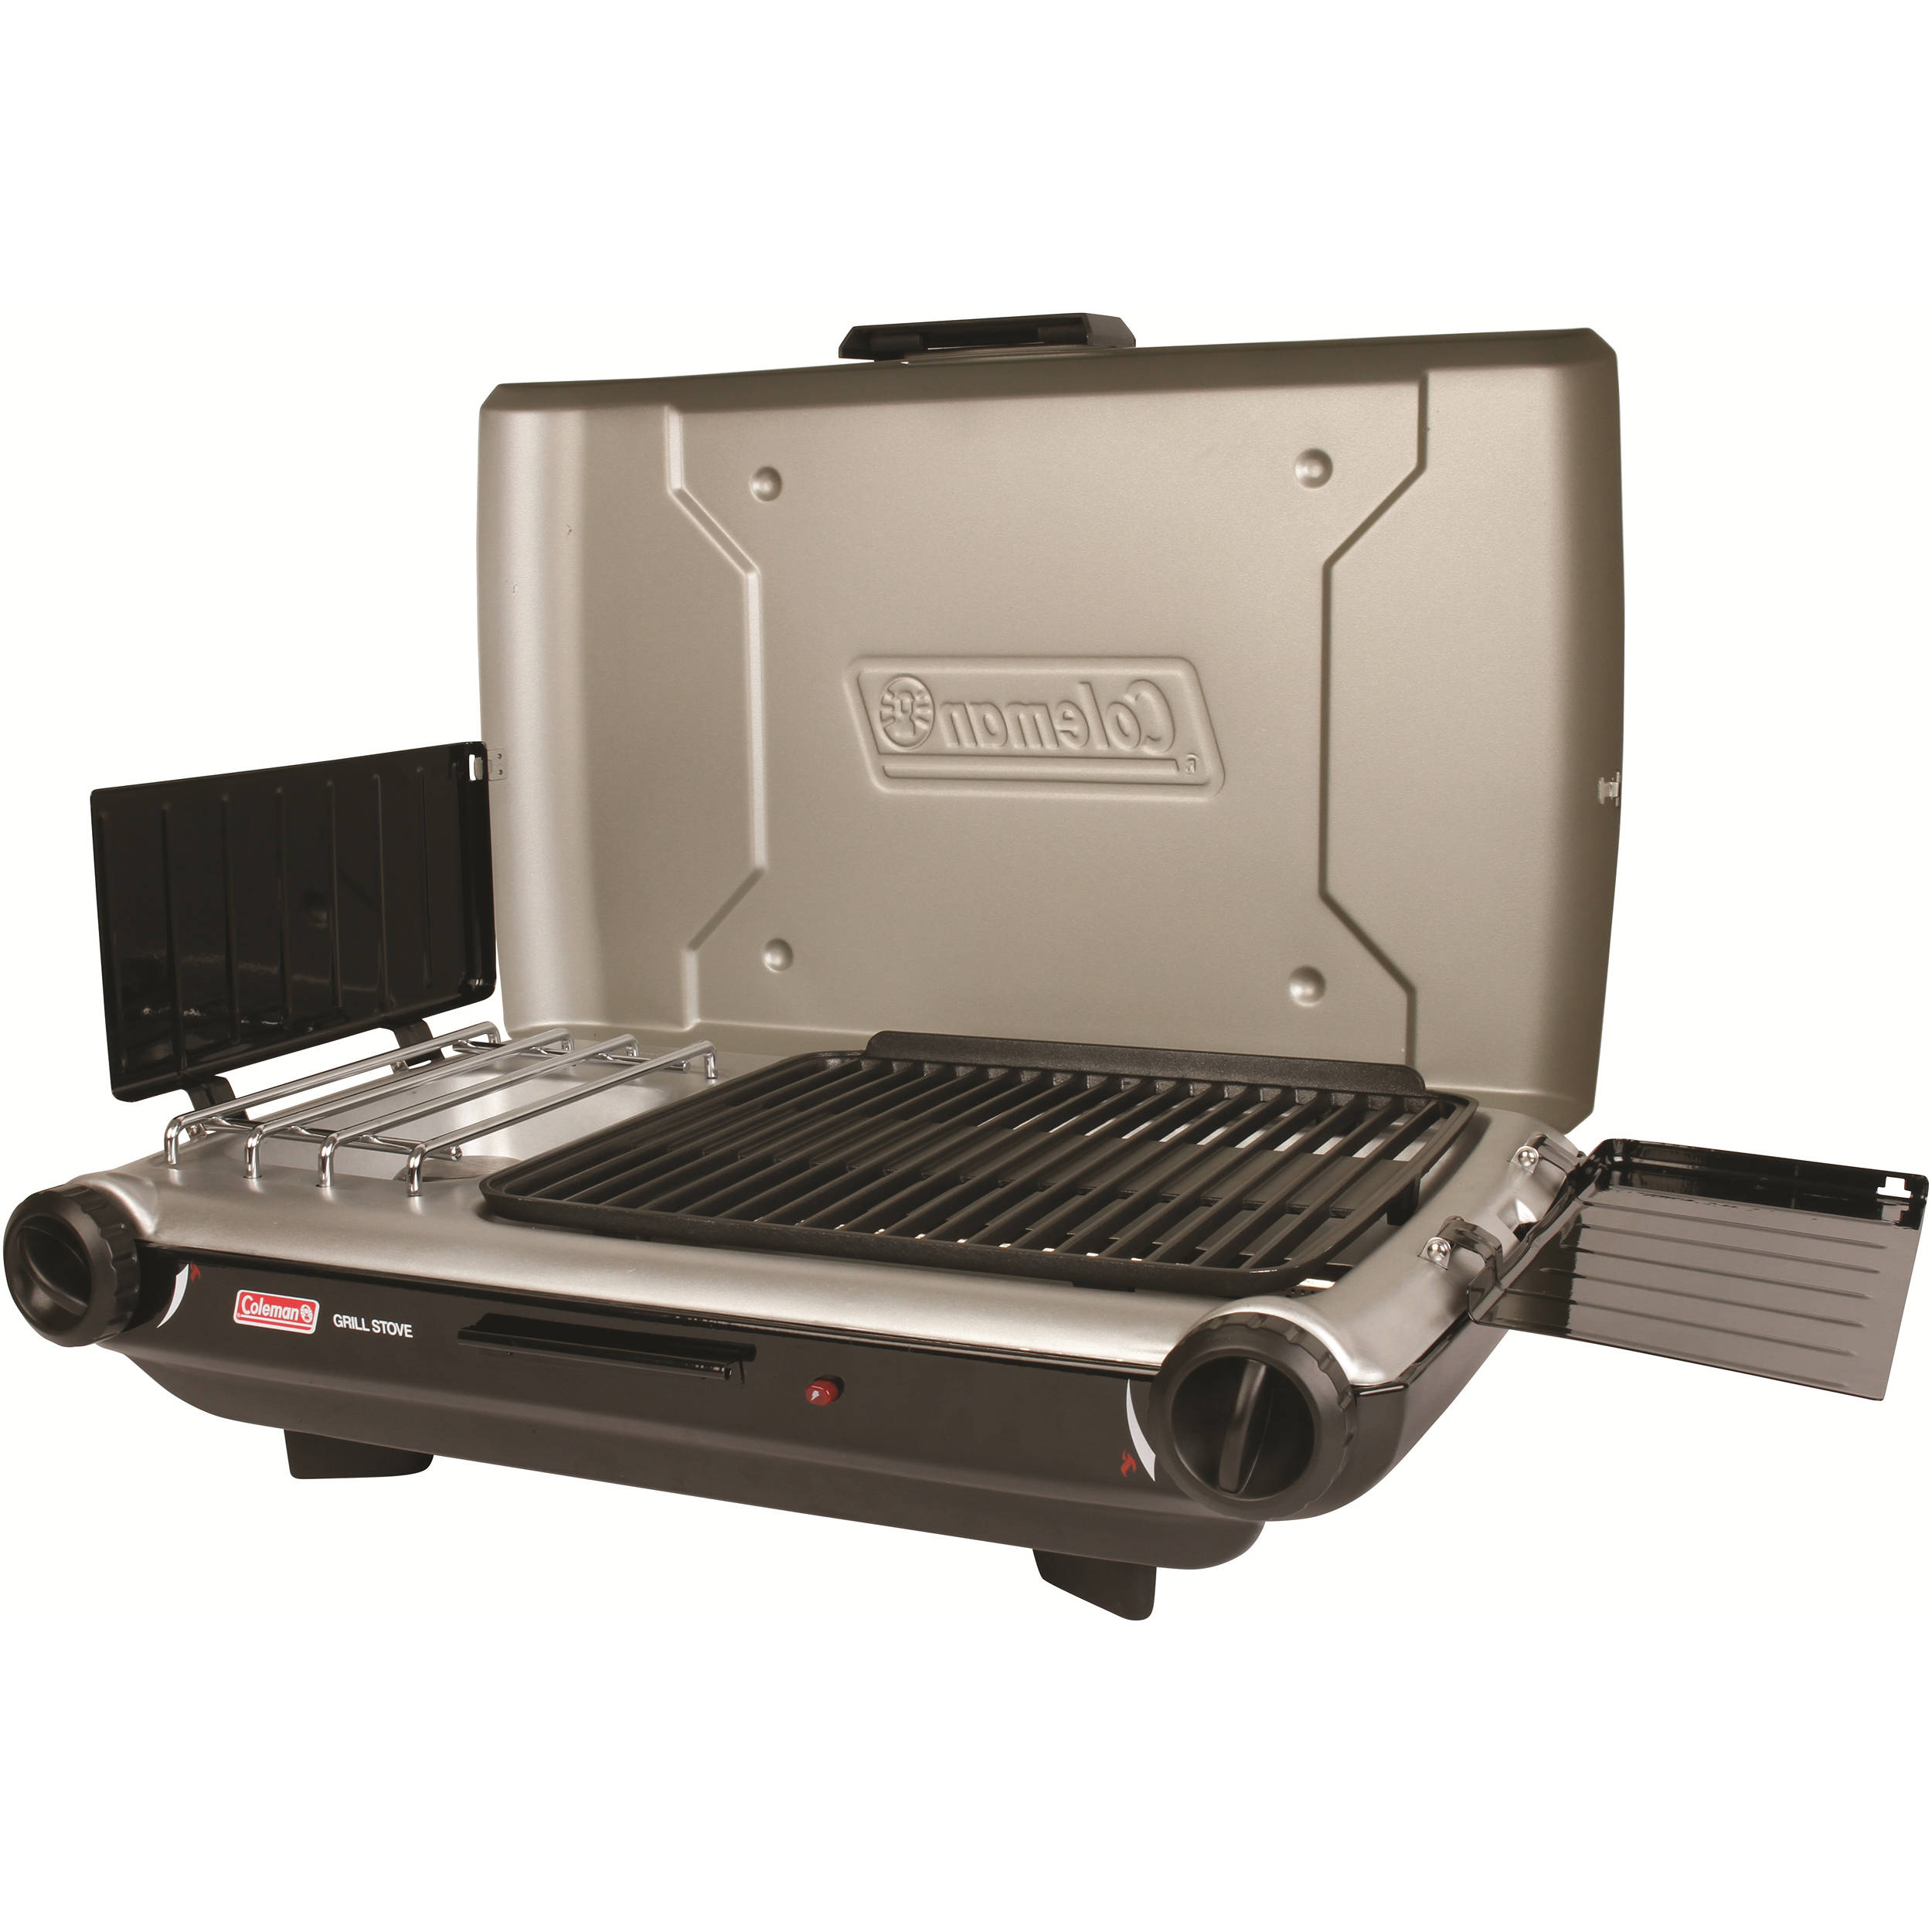 Coleman Camp Propane Grill/Stove+ 2000020925 B&H Photo Video